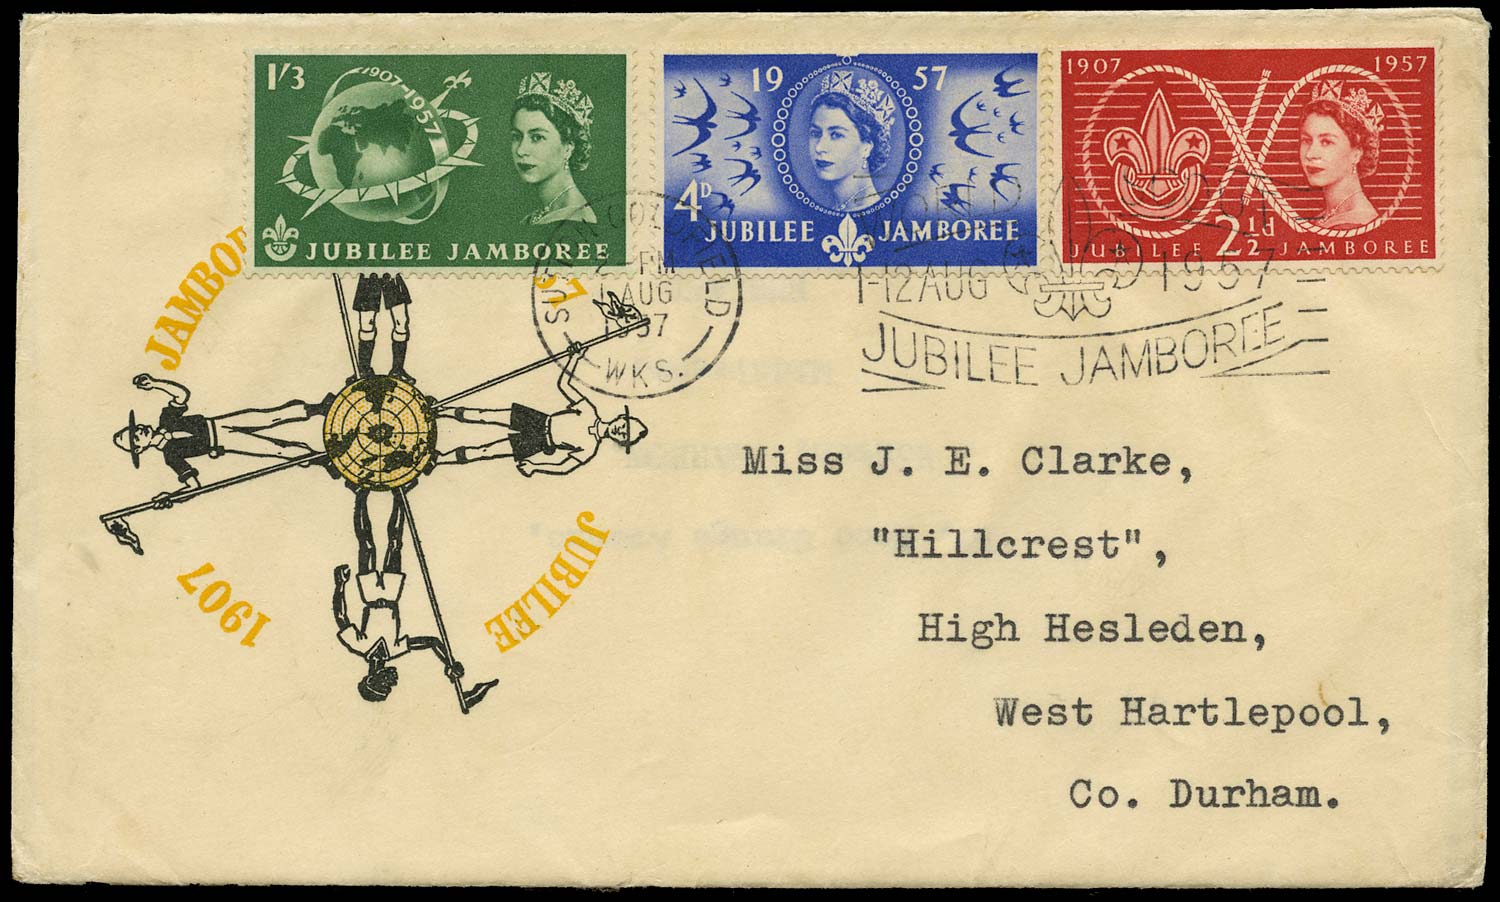 GB 1957  SG557/9 Cover - First day cover